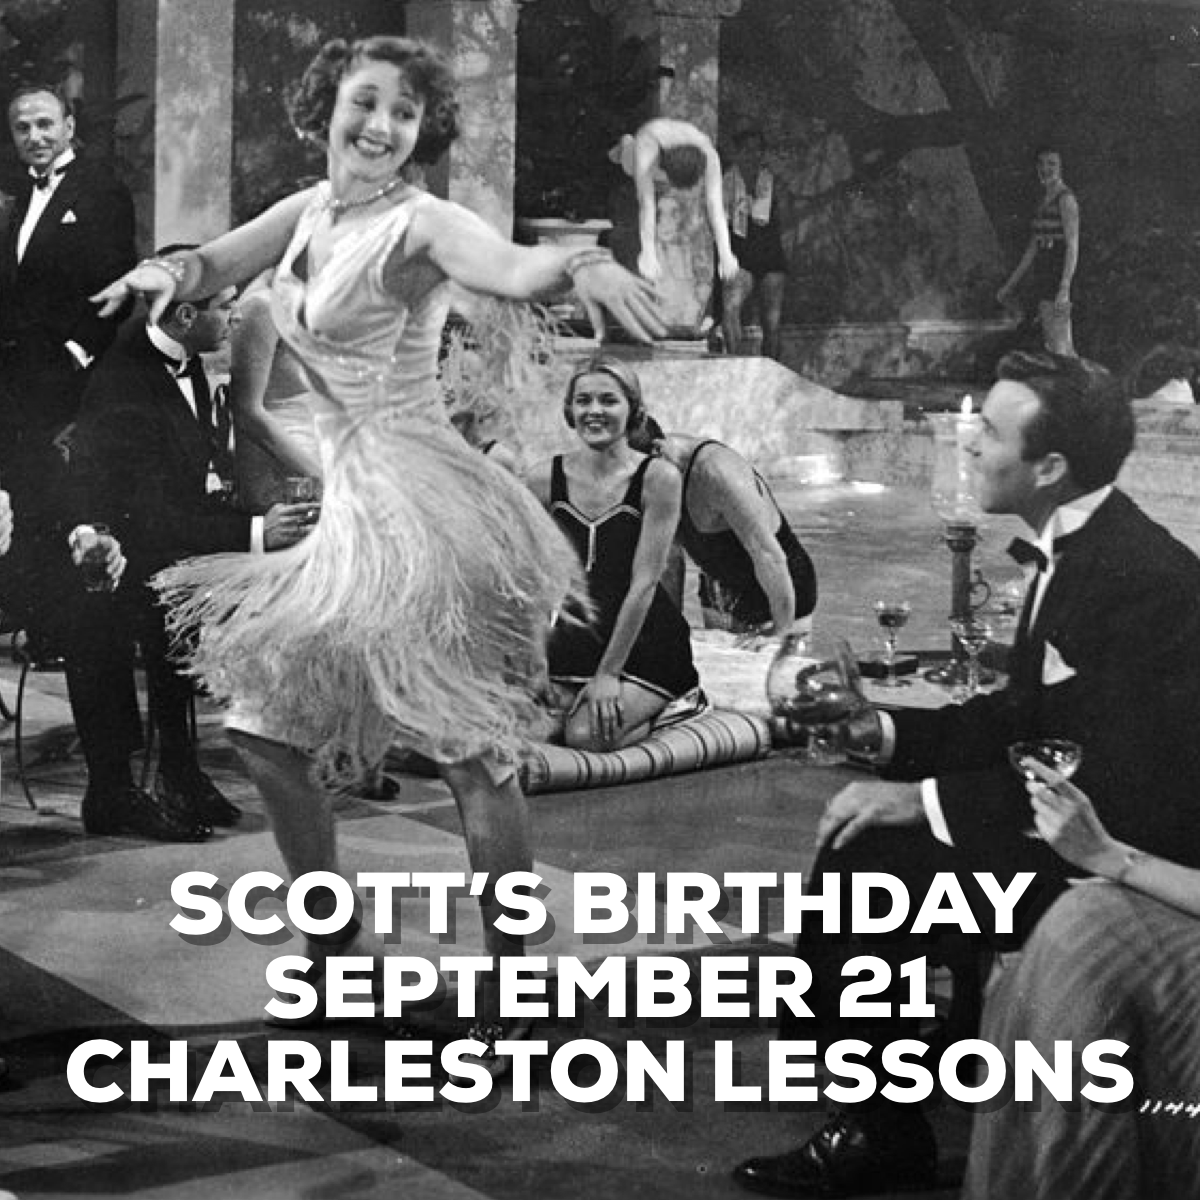 Scott's Birthday - Charleston Lessons image